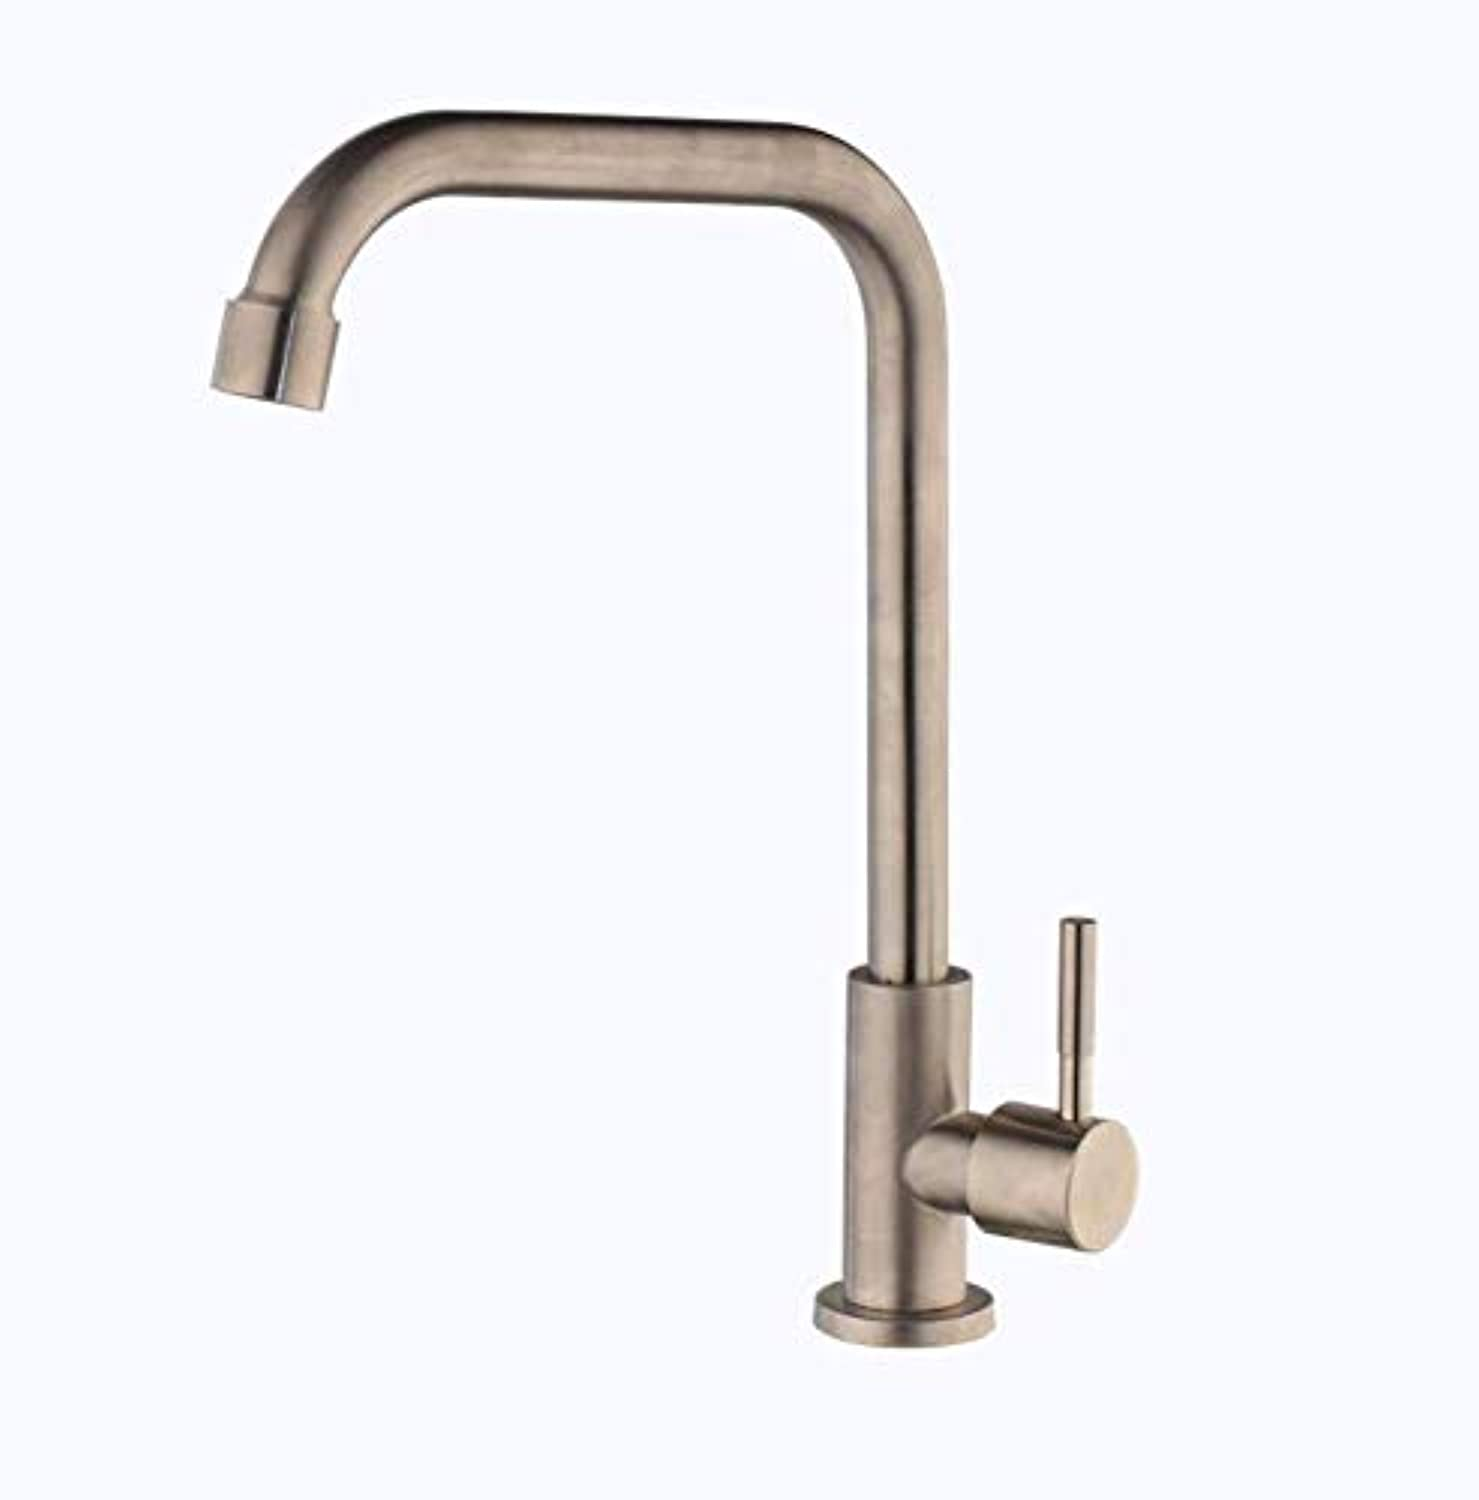 Faucetbathroom Faucet Single Handle Kitchen Sink Basin Faucets Only Cold Water Faucets Basin Sink Tap Water Kitchen Faucets Deck Mounted Tap